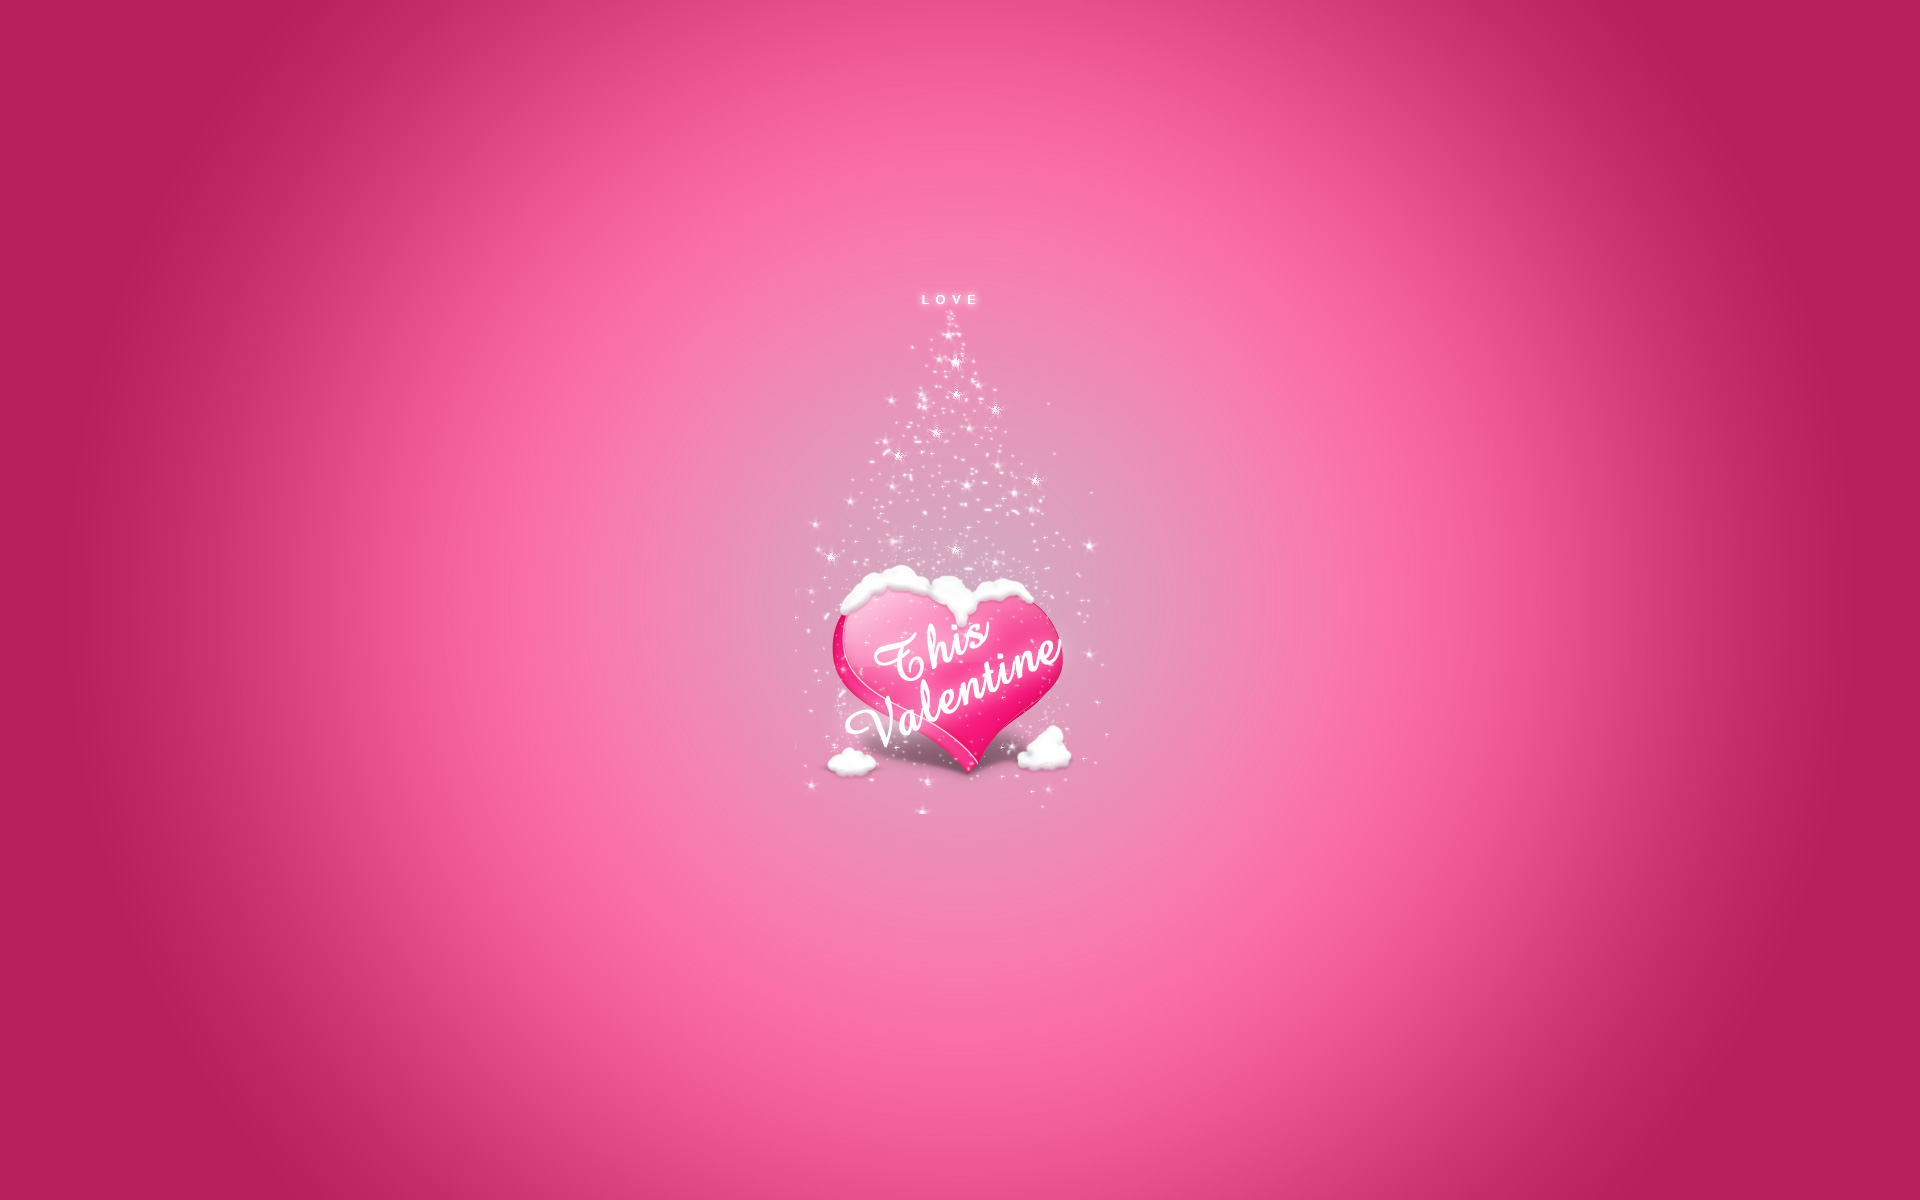 Love Wallpapers Large Size : Rose Wallpaper Hd Tumblr For Walls for Mobile Phone widescreen for desktop full size dwonload ...